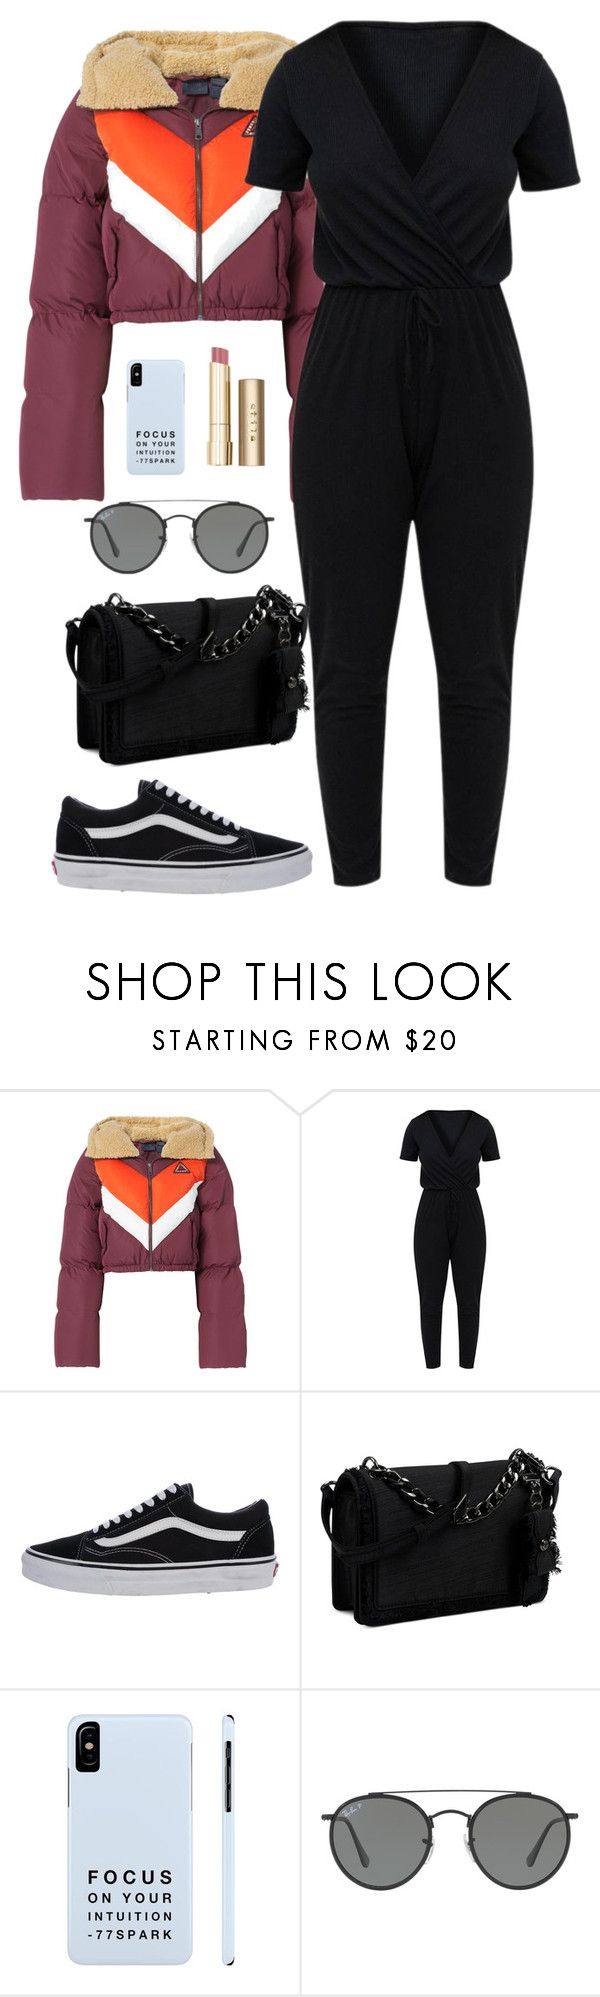 """""""You don't have to be perfect to be amazing"""" by chase-stars ❤ liked on Polyvore featuring Puma, Vans, Nine West, Ray-Ban and Stila"""